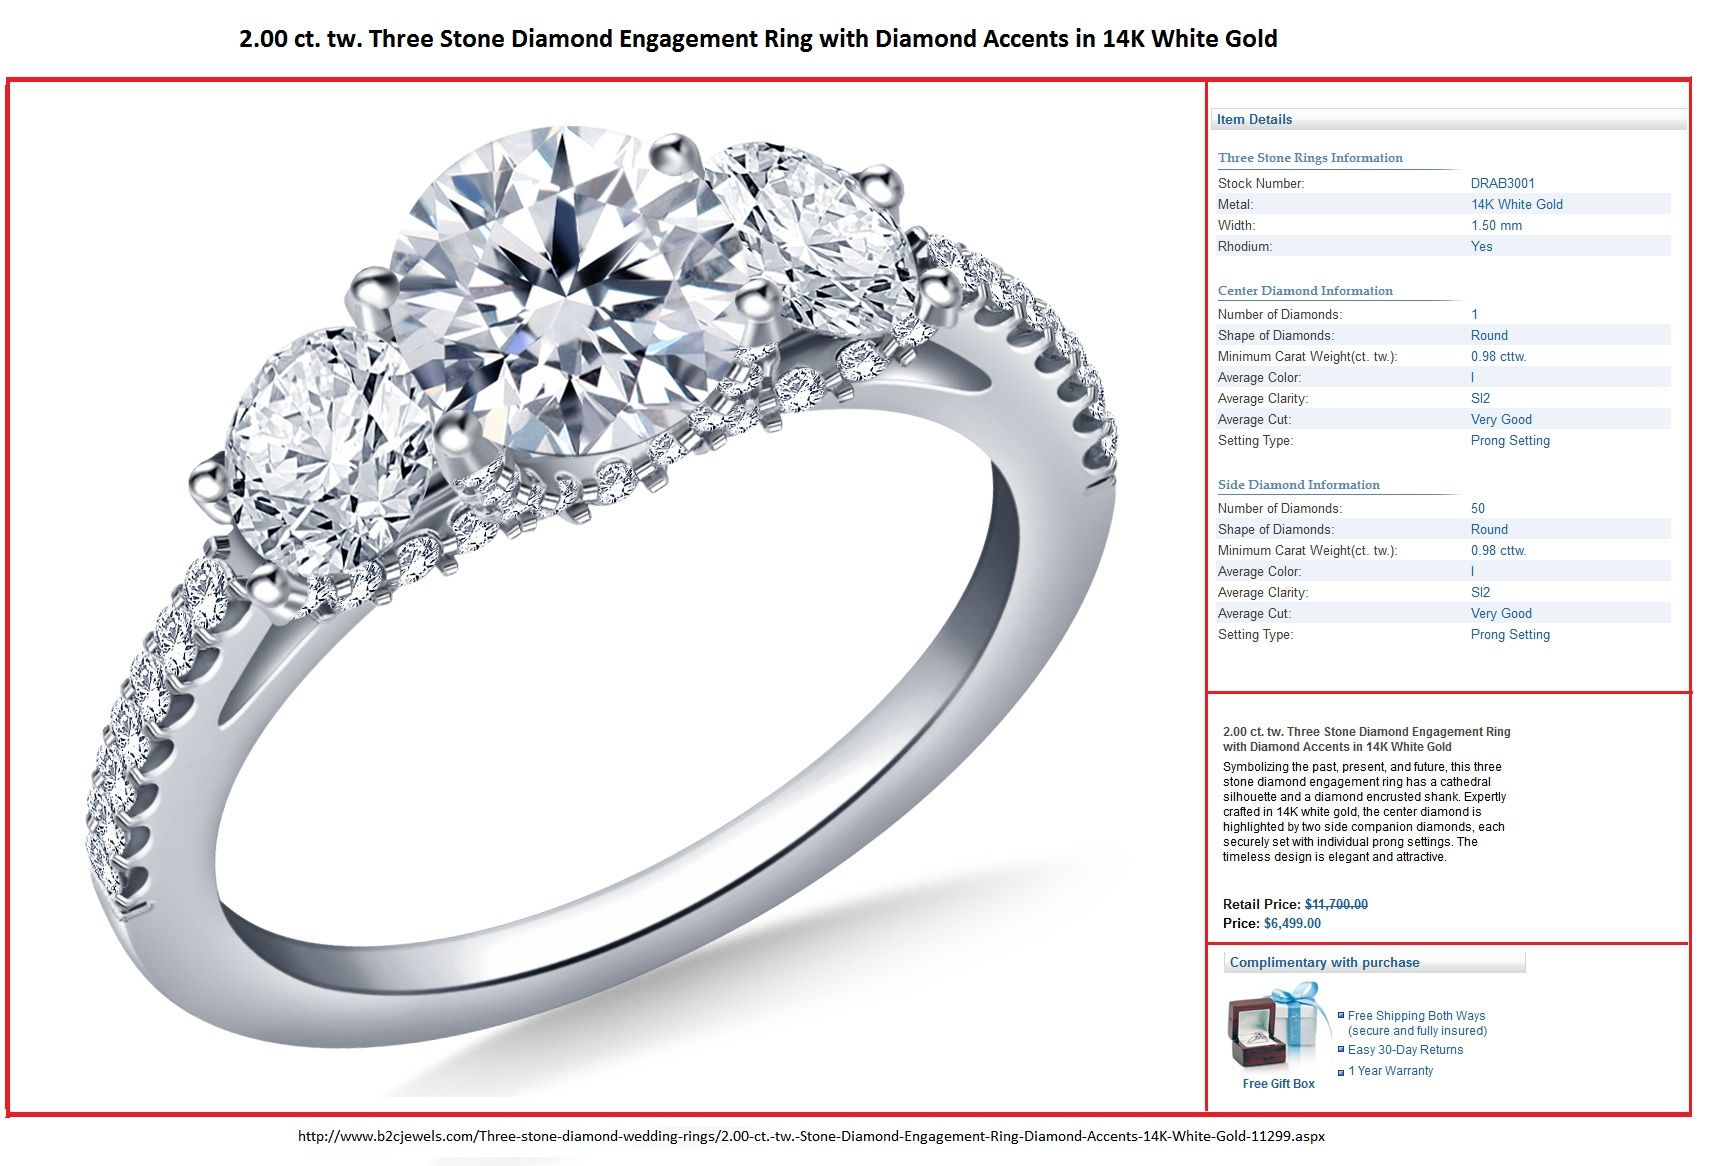 2 00 Ct Tw Three Stone Diamond Engagement Ring With Diamond Accents In 14k Three Stone Engagement Rings Three Stone Diamond Rings Engagement Engagement Rings